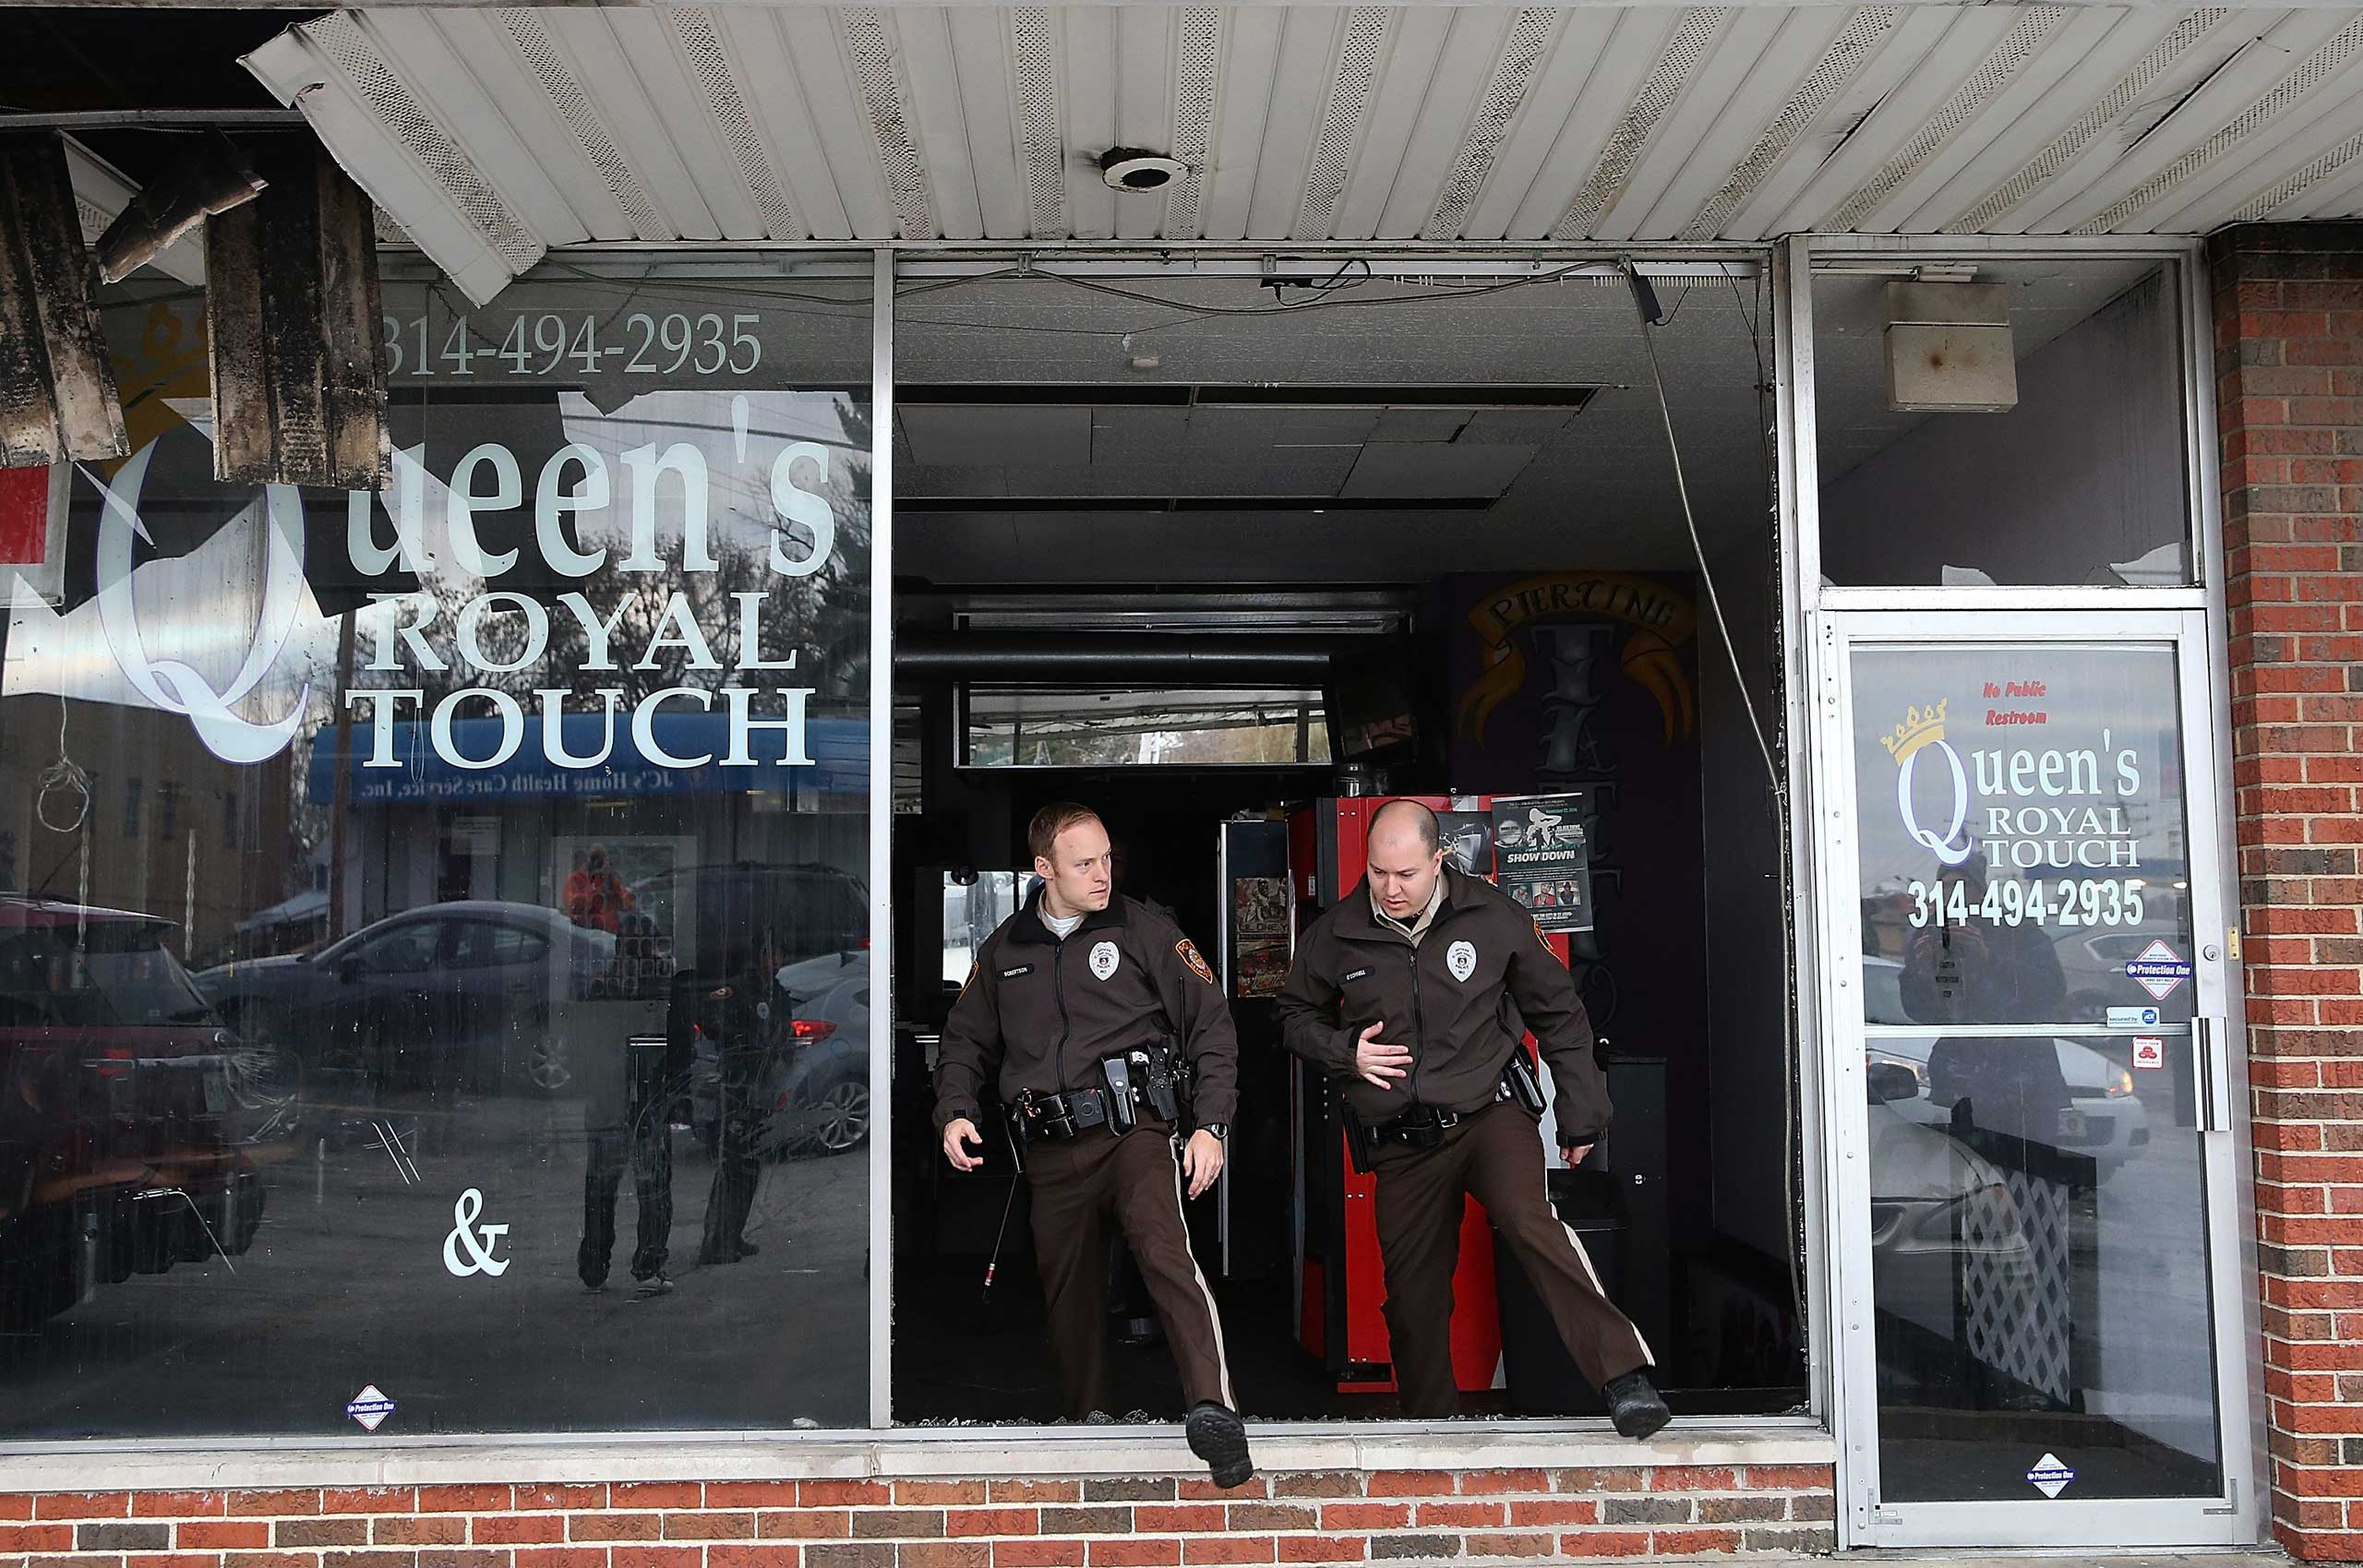 St. Louis County police officers search a business in a building that was burned during a demonstration in Dellwood, Mo. on Nov. 25, 2014.